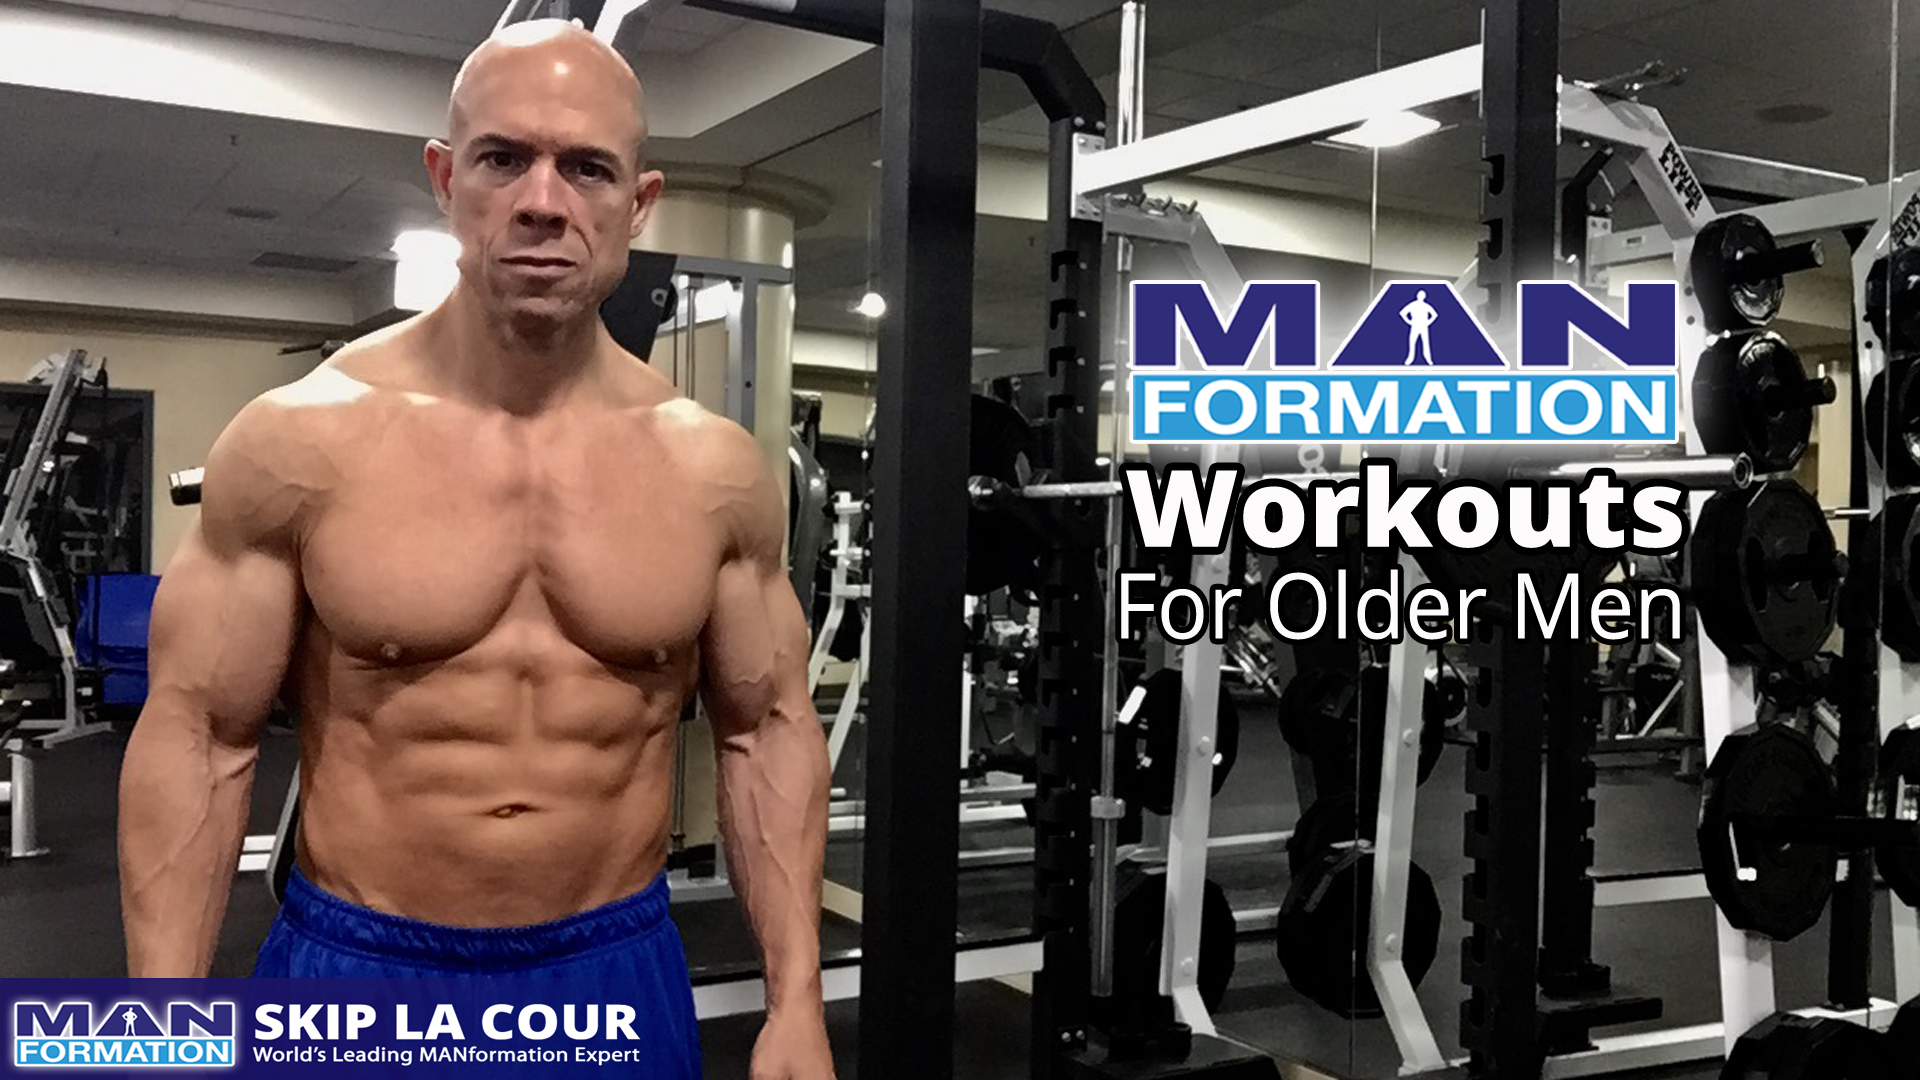 manformation workouts for older men How To Get A Six Pack When You Are An Older Man